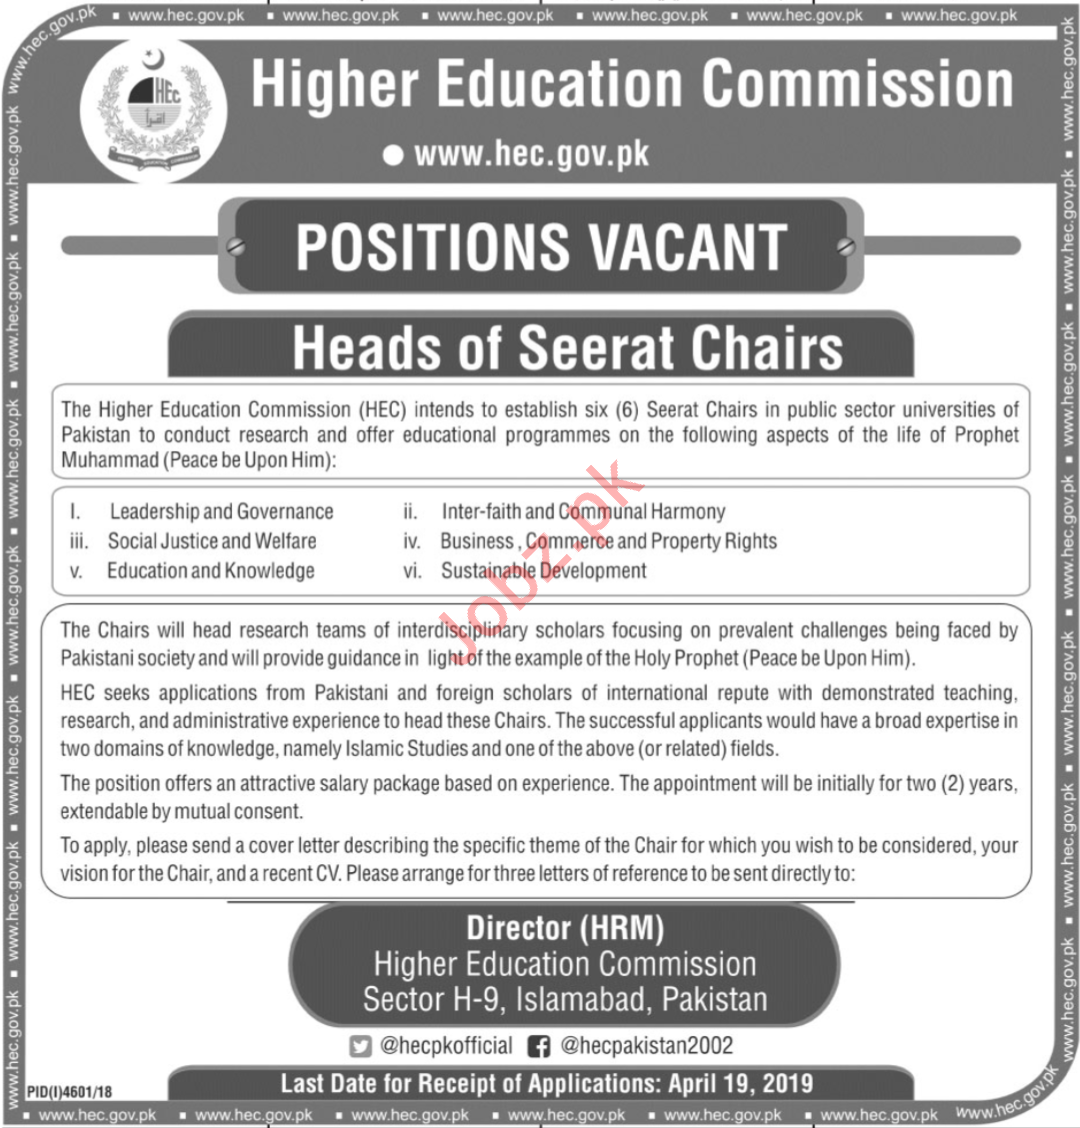 HEC Higher Education Commission Jobs in Islamabad